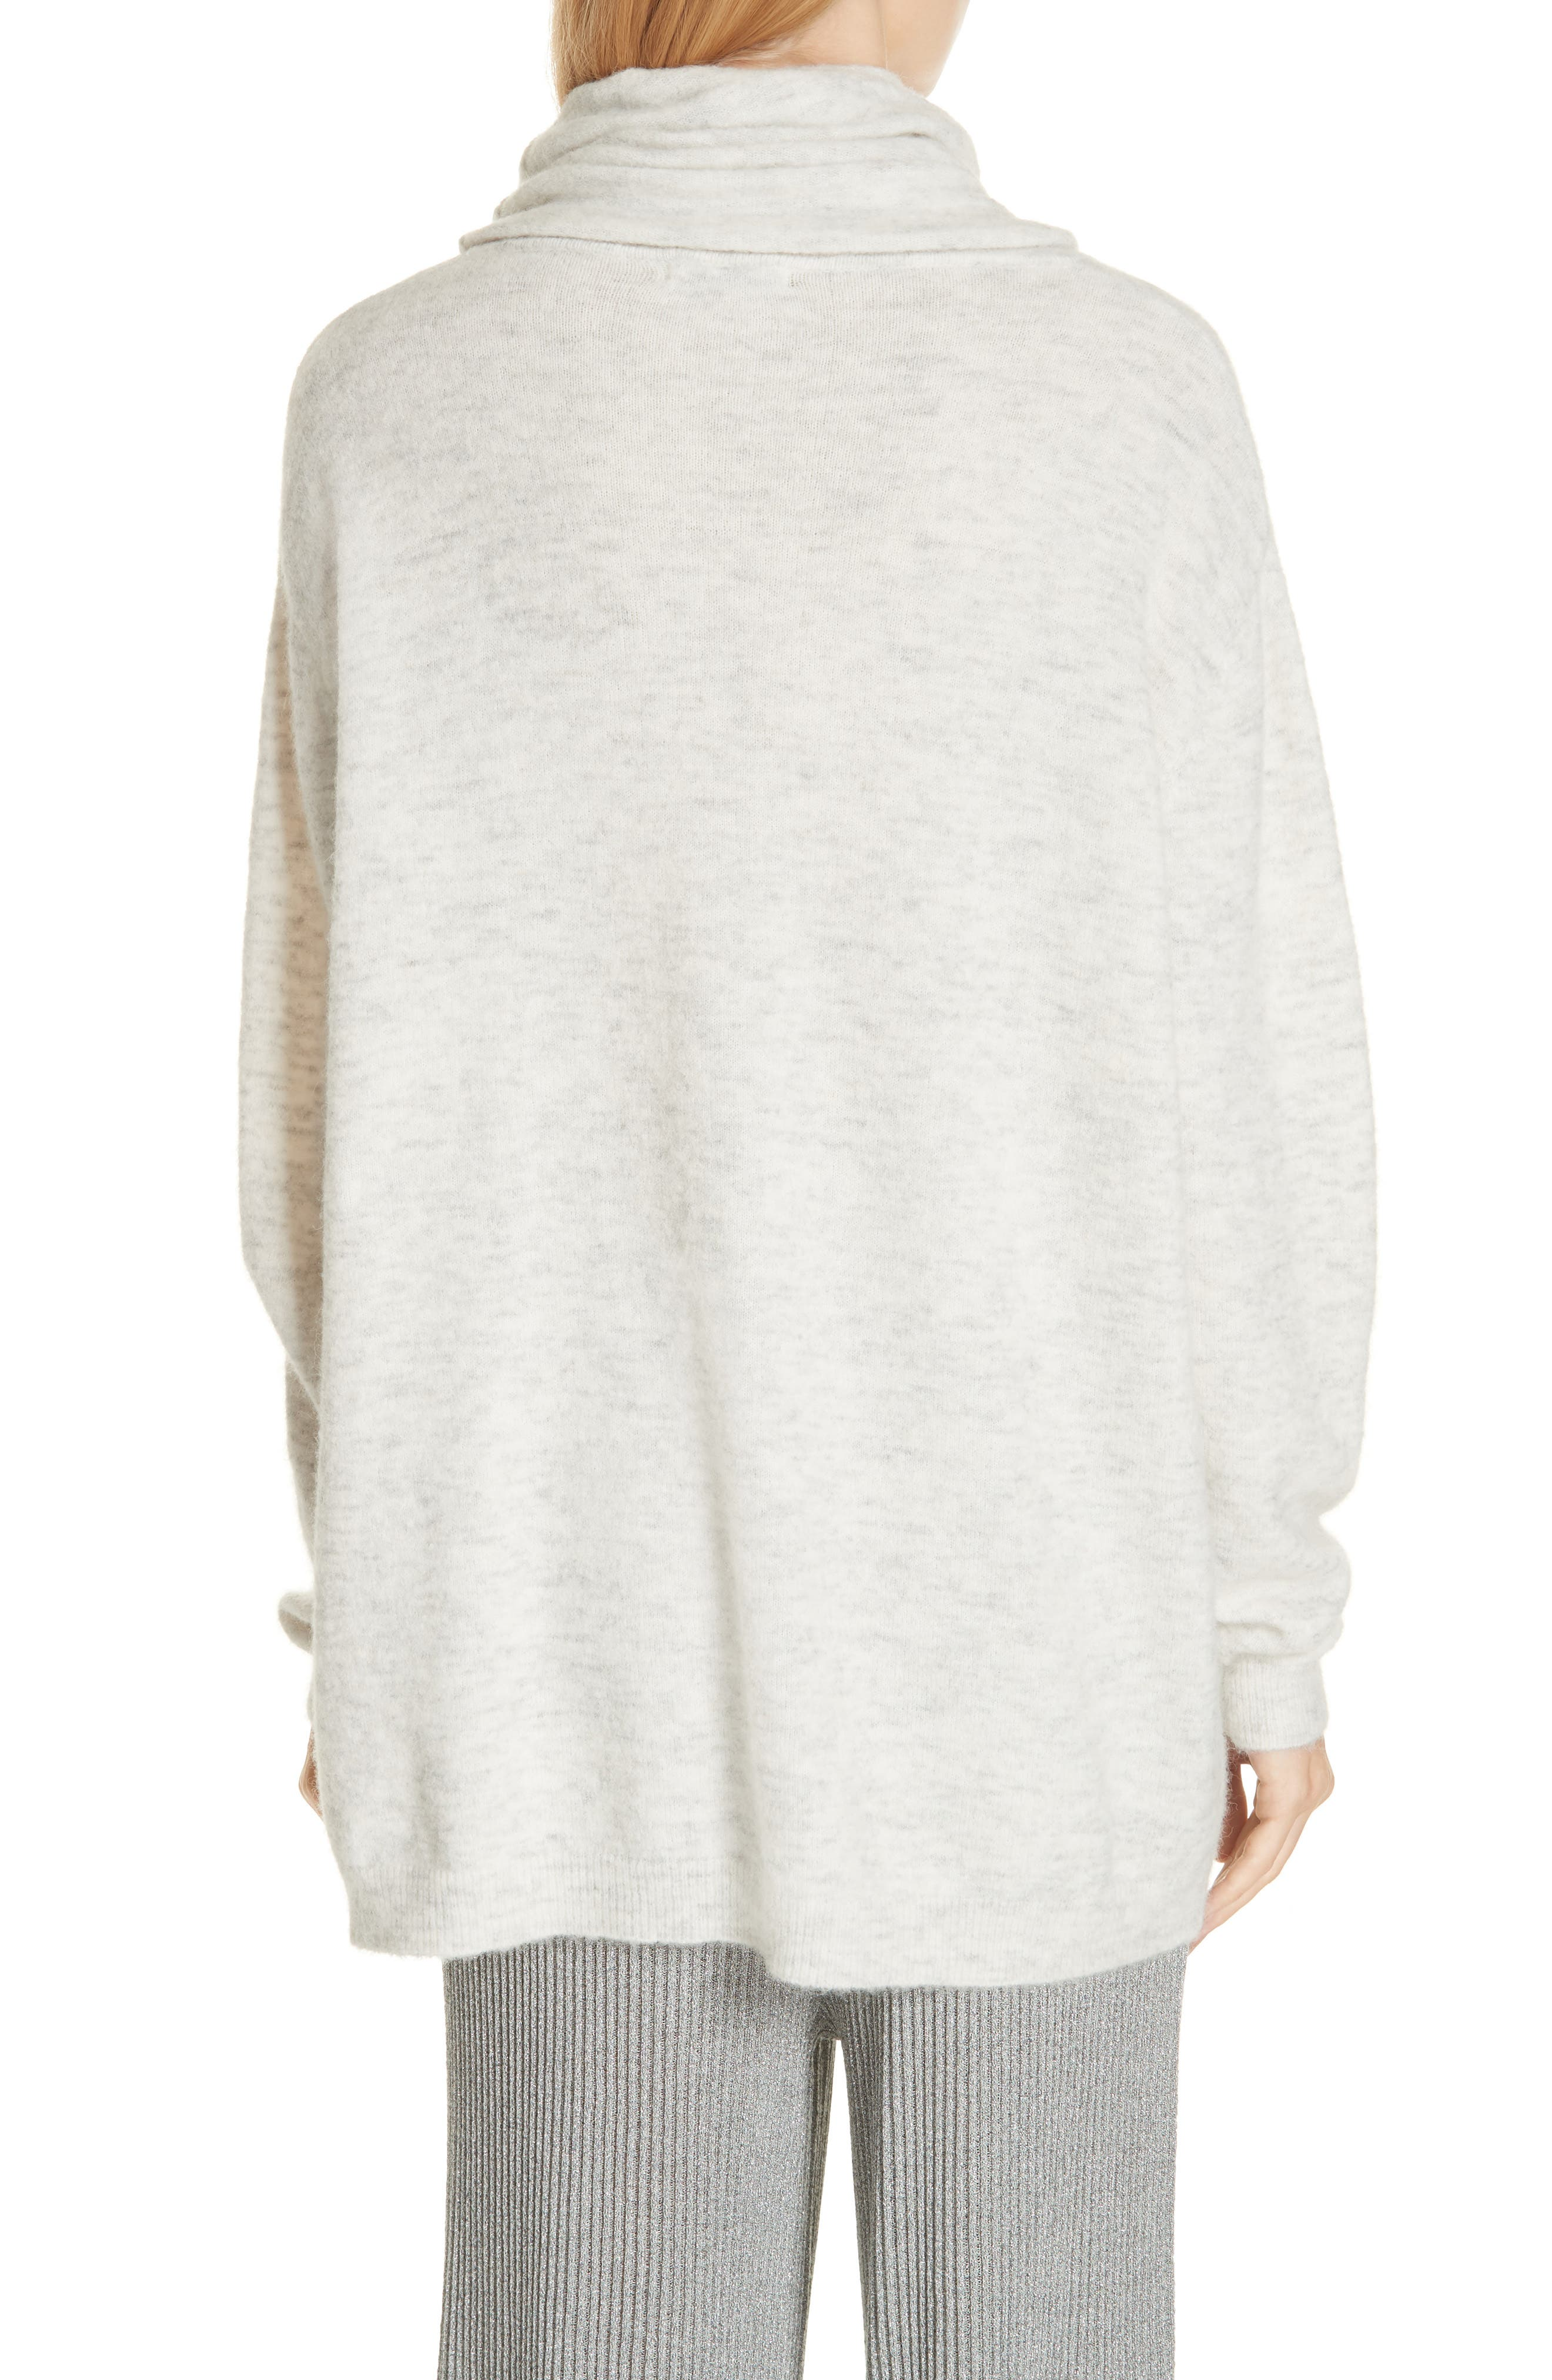 Mineral Cowl Neck Sweater,                             Alternate thumbnail 2, color,                             GREY